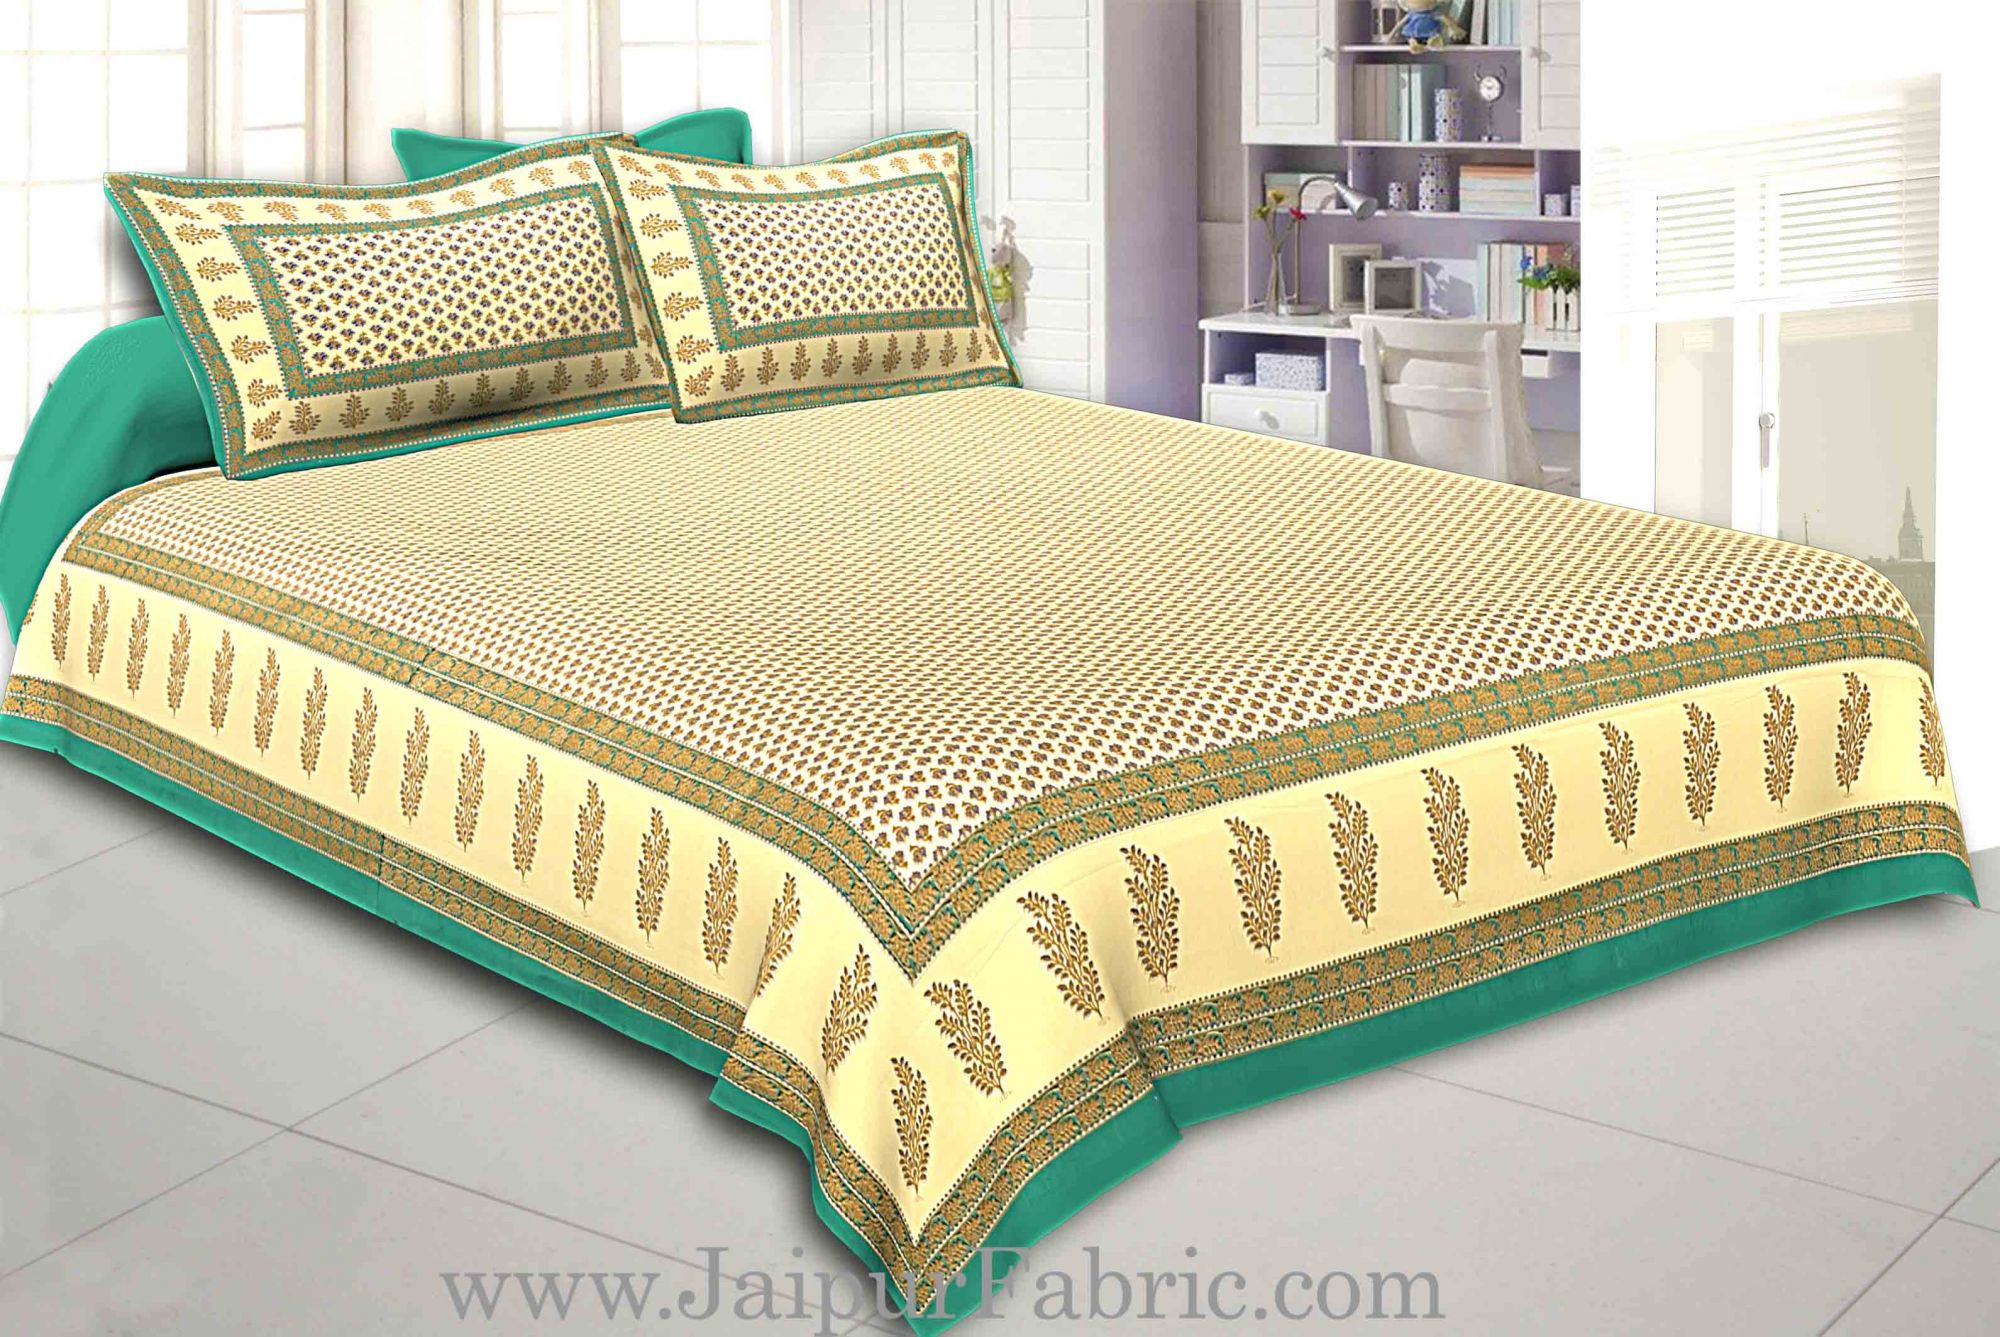 Green Border Cream Base With booti Pattern With Golden Print Super Fine Cotton Double Bed Sheet